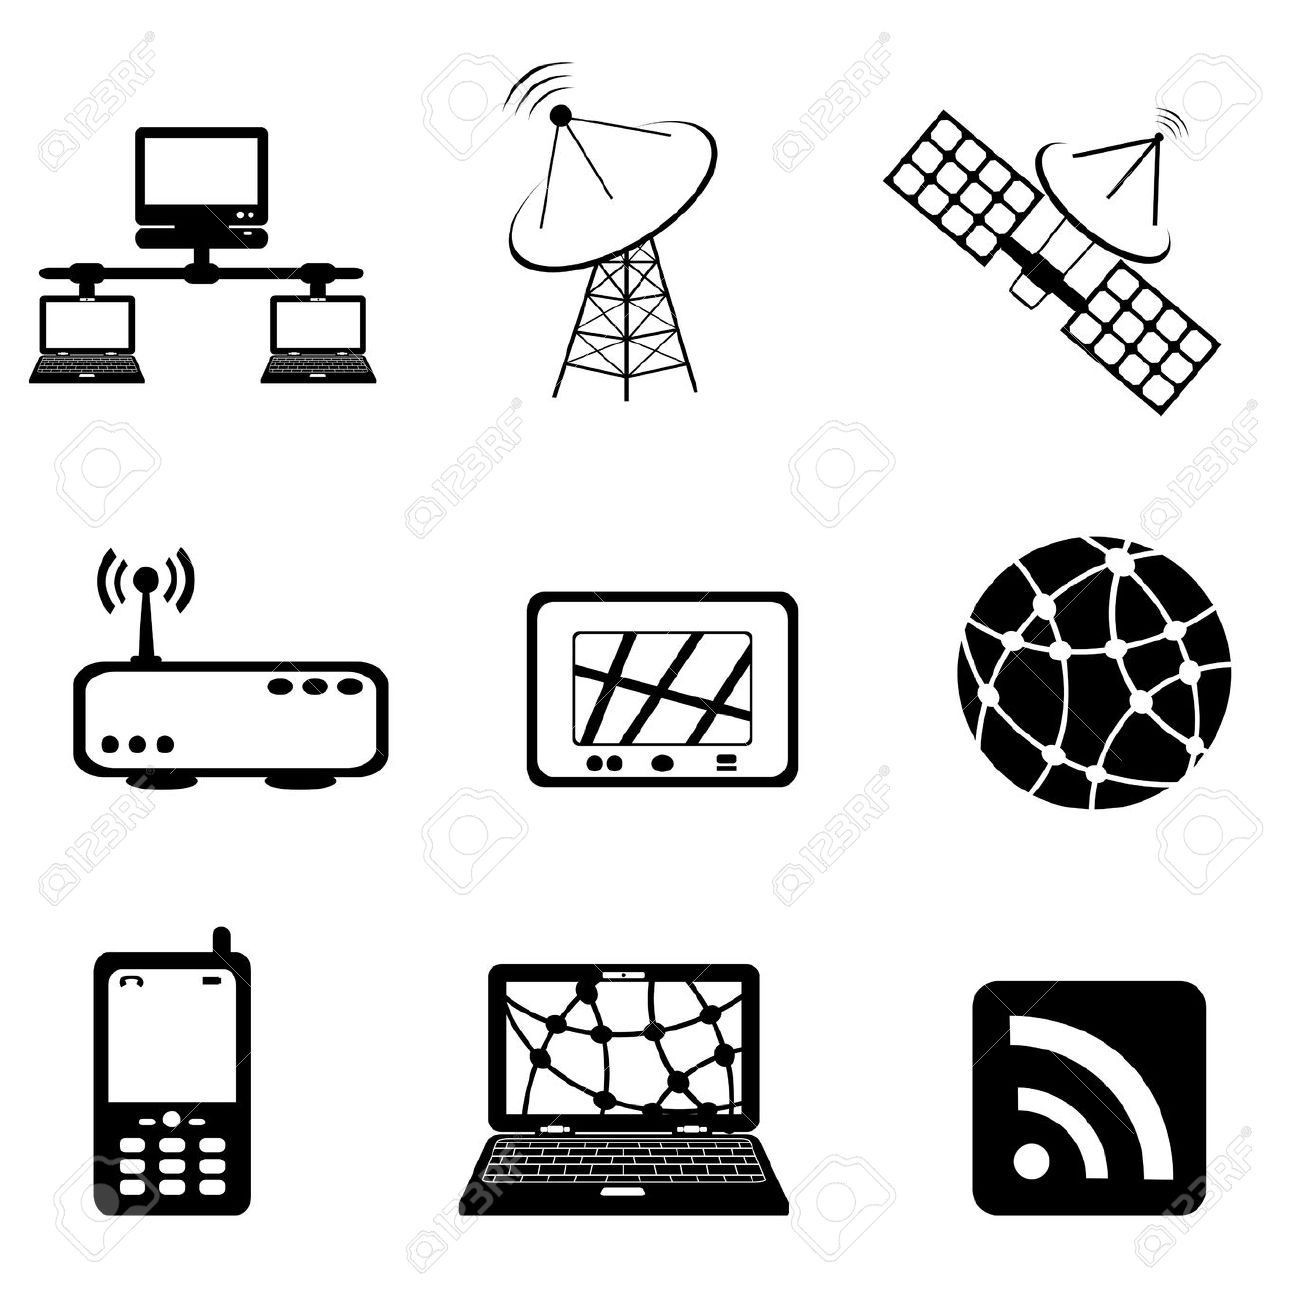 Communication Technology Clipart 20 Free Cliparts